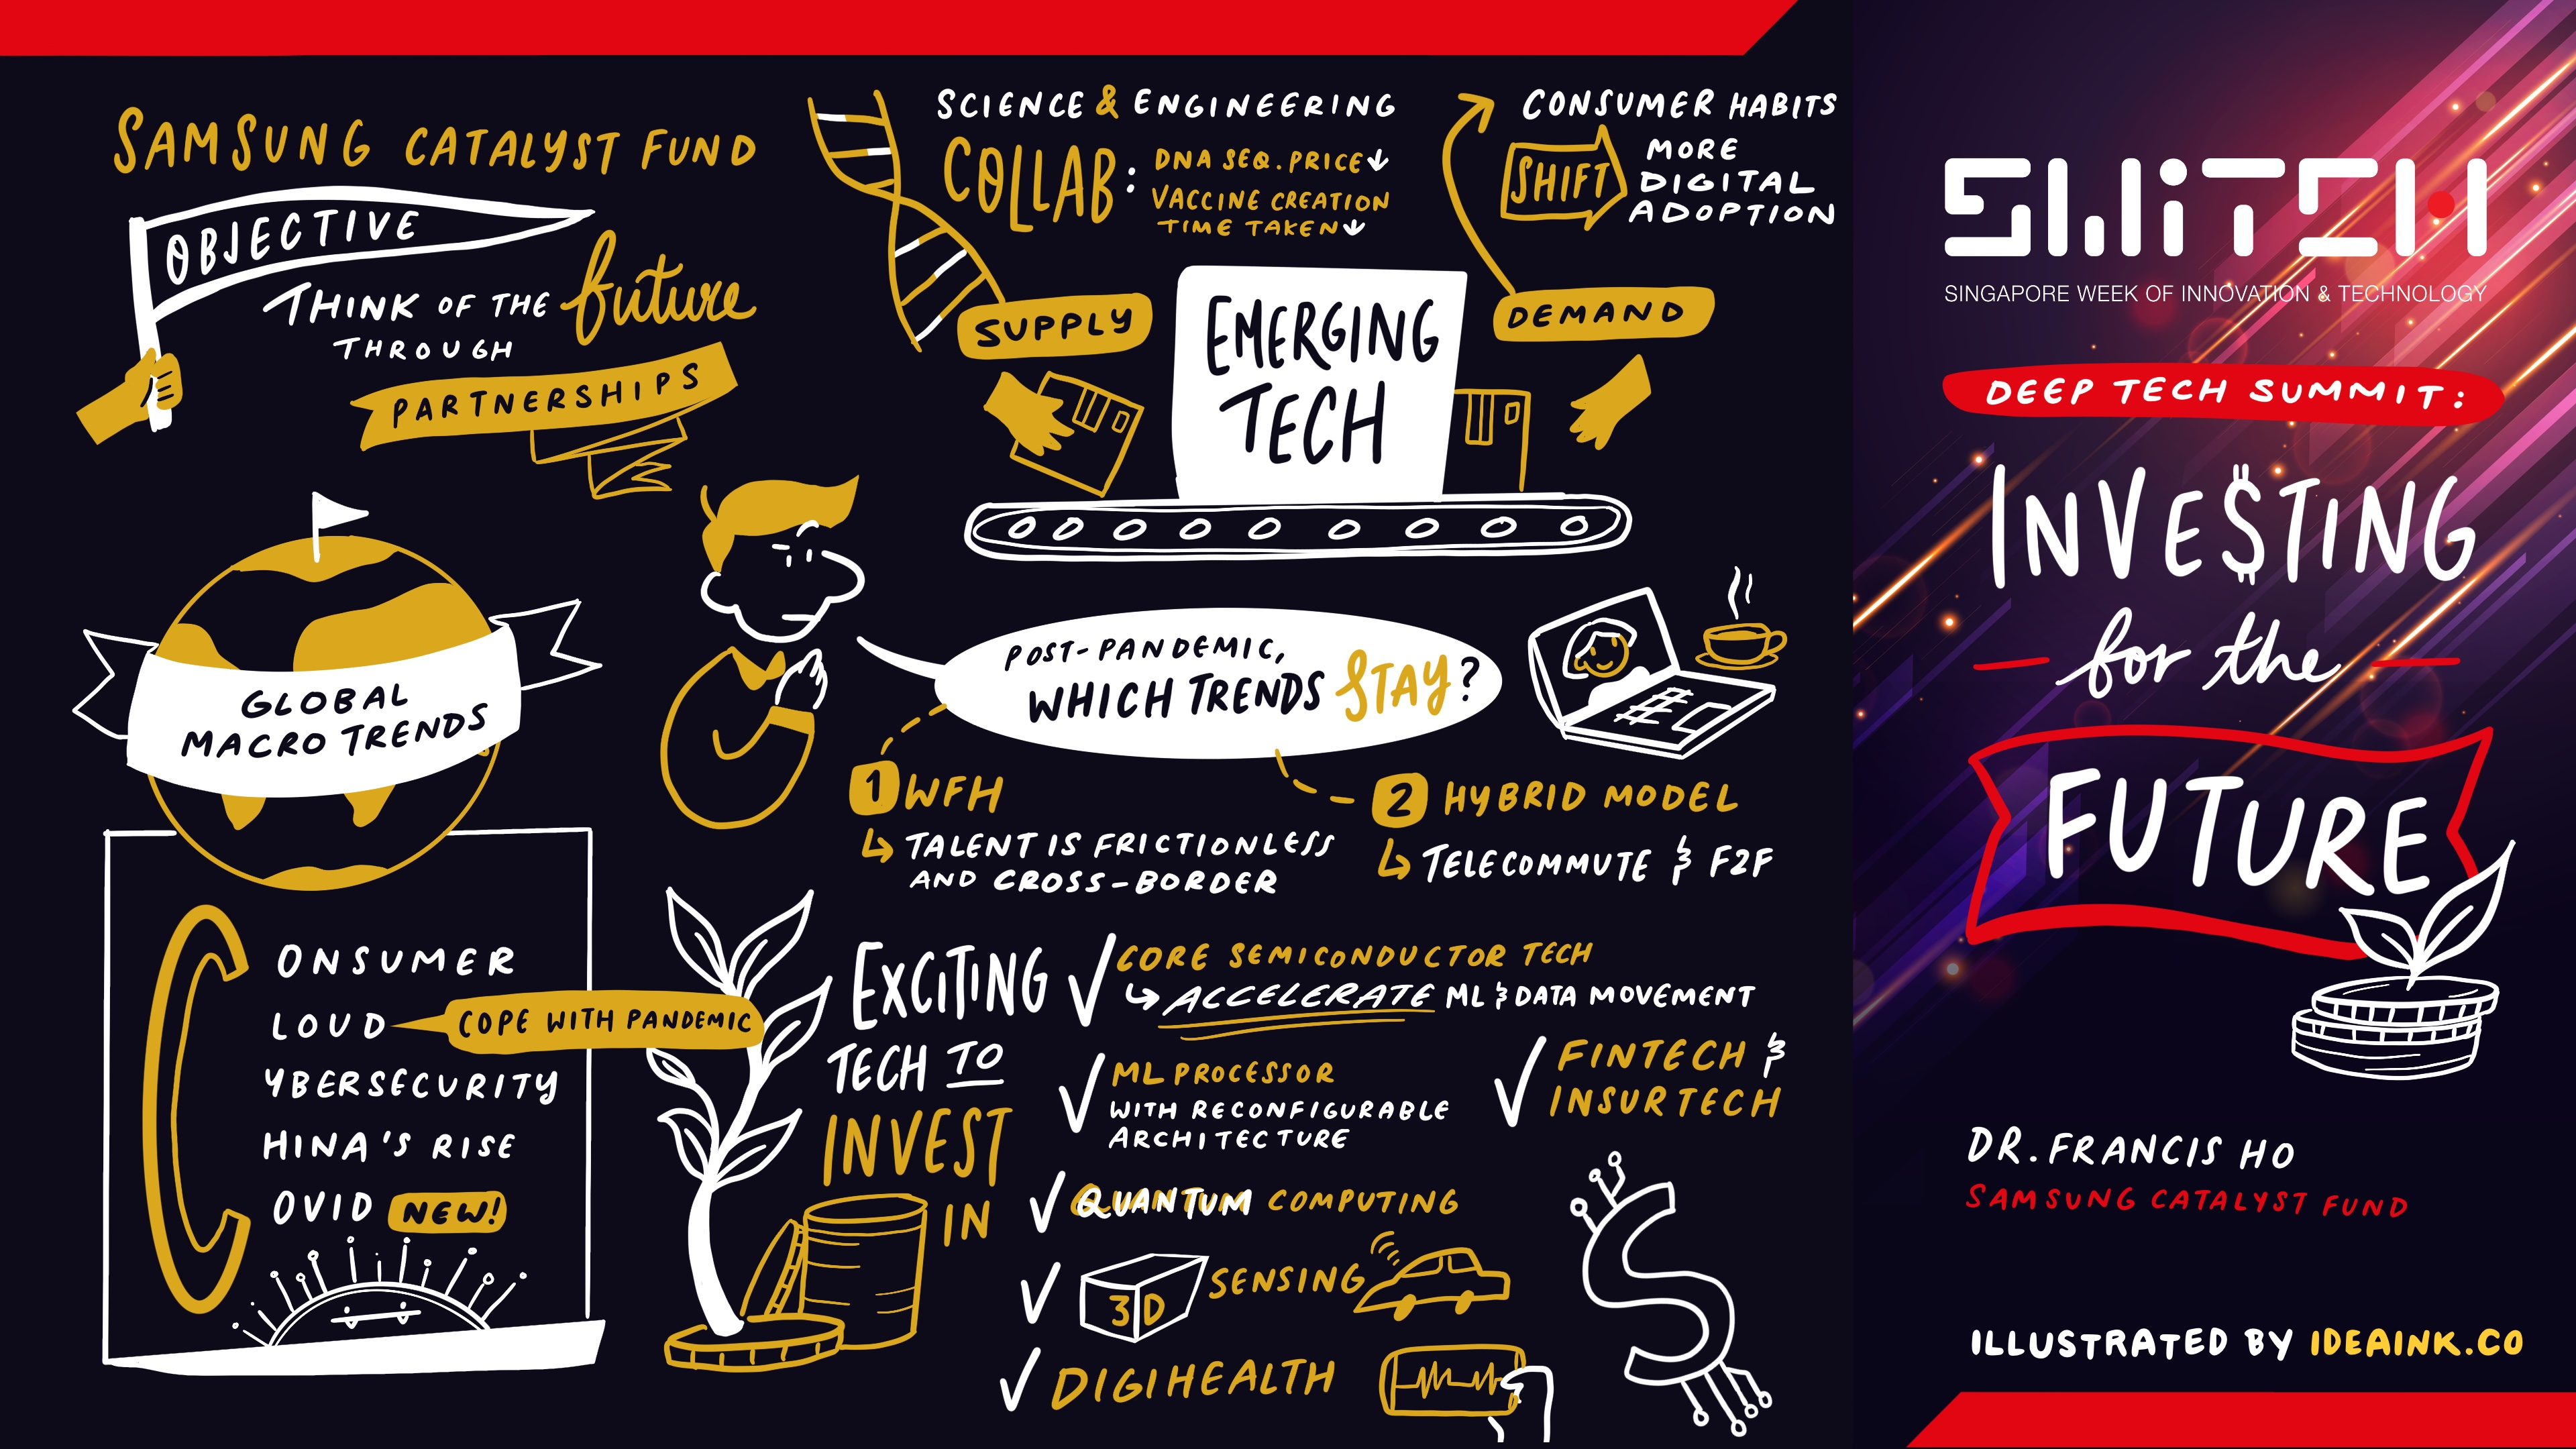 Deep Tech Summit: Investing for the Future